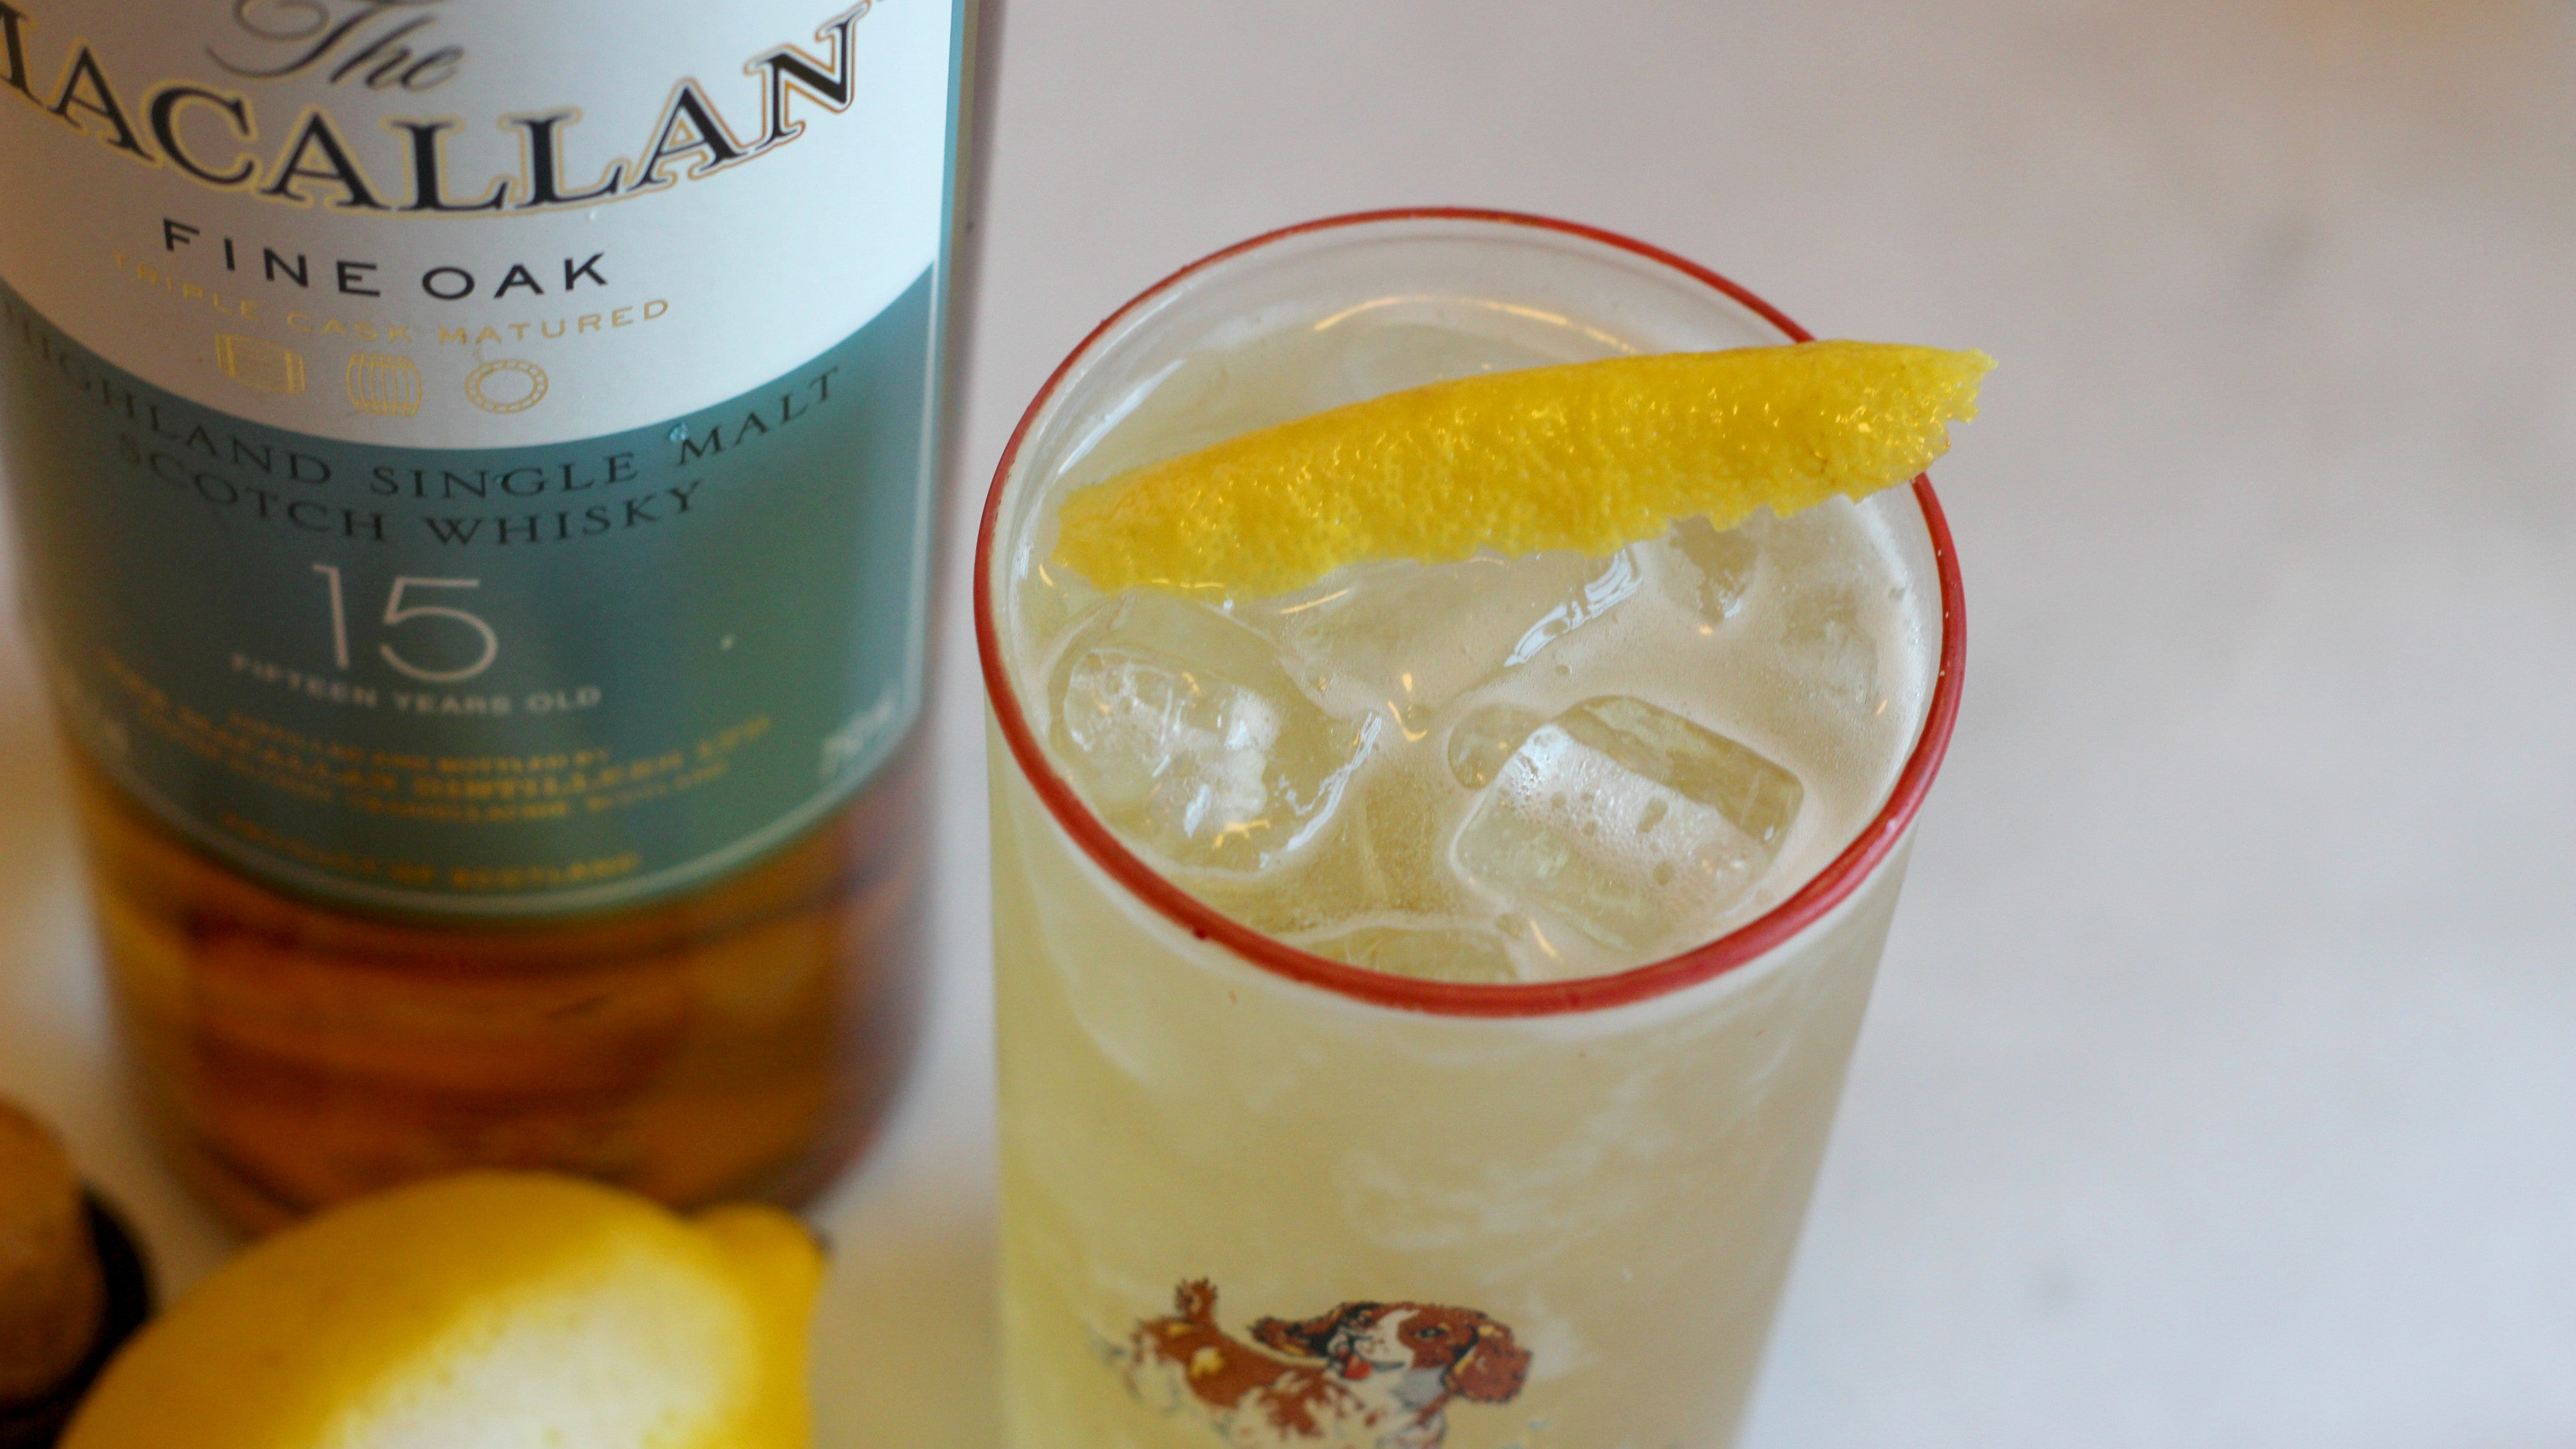 3-Ingredient Happy Hour: The Very Simple And Good Scotch Highball